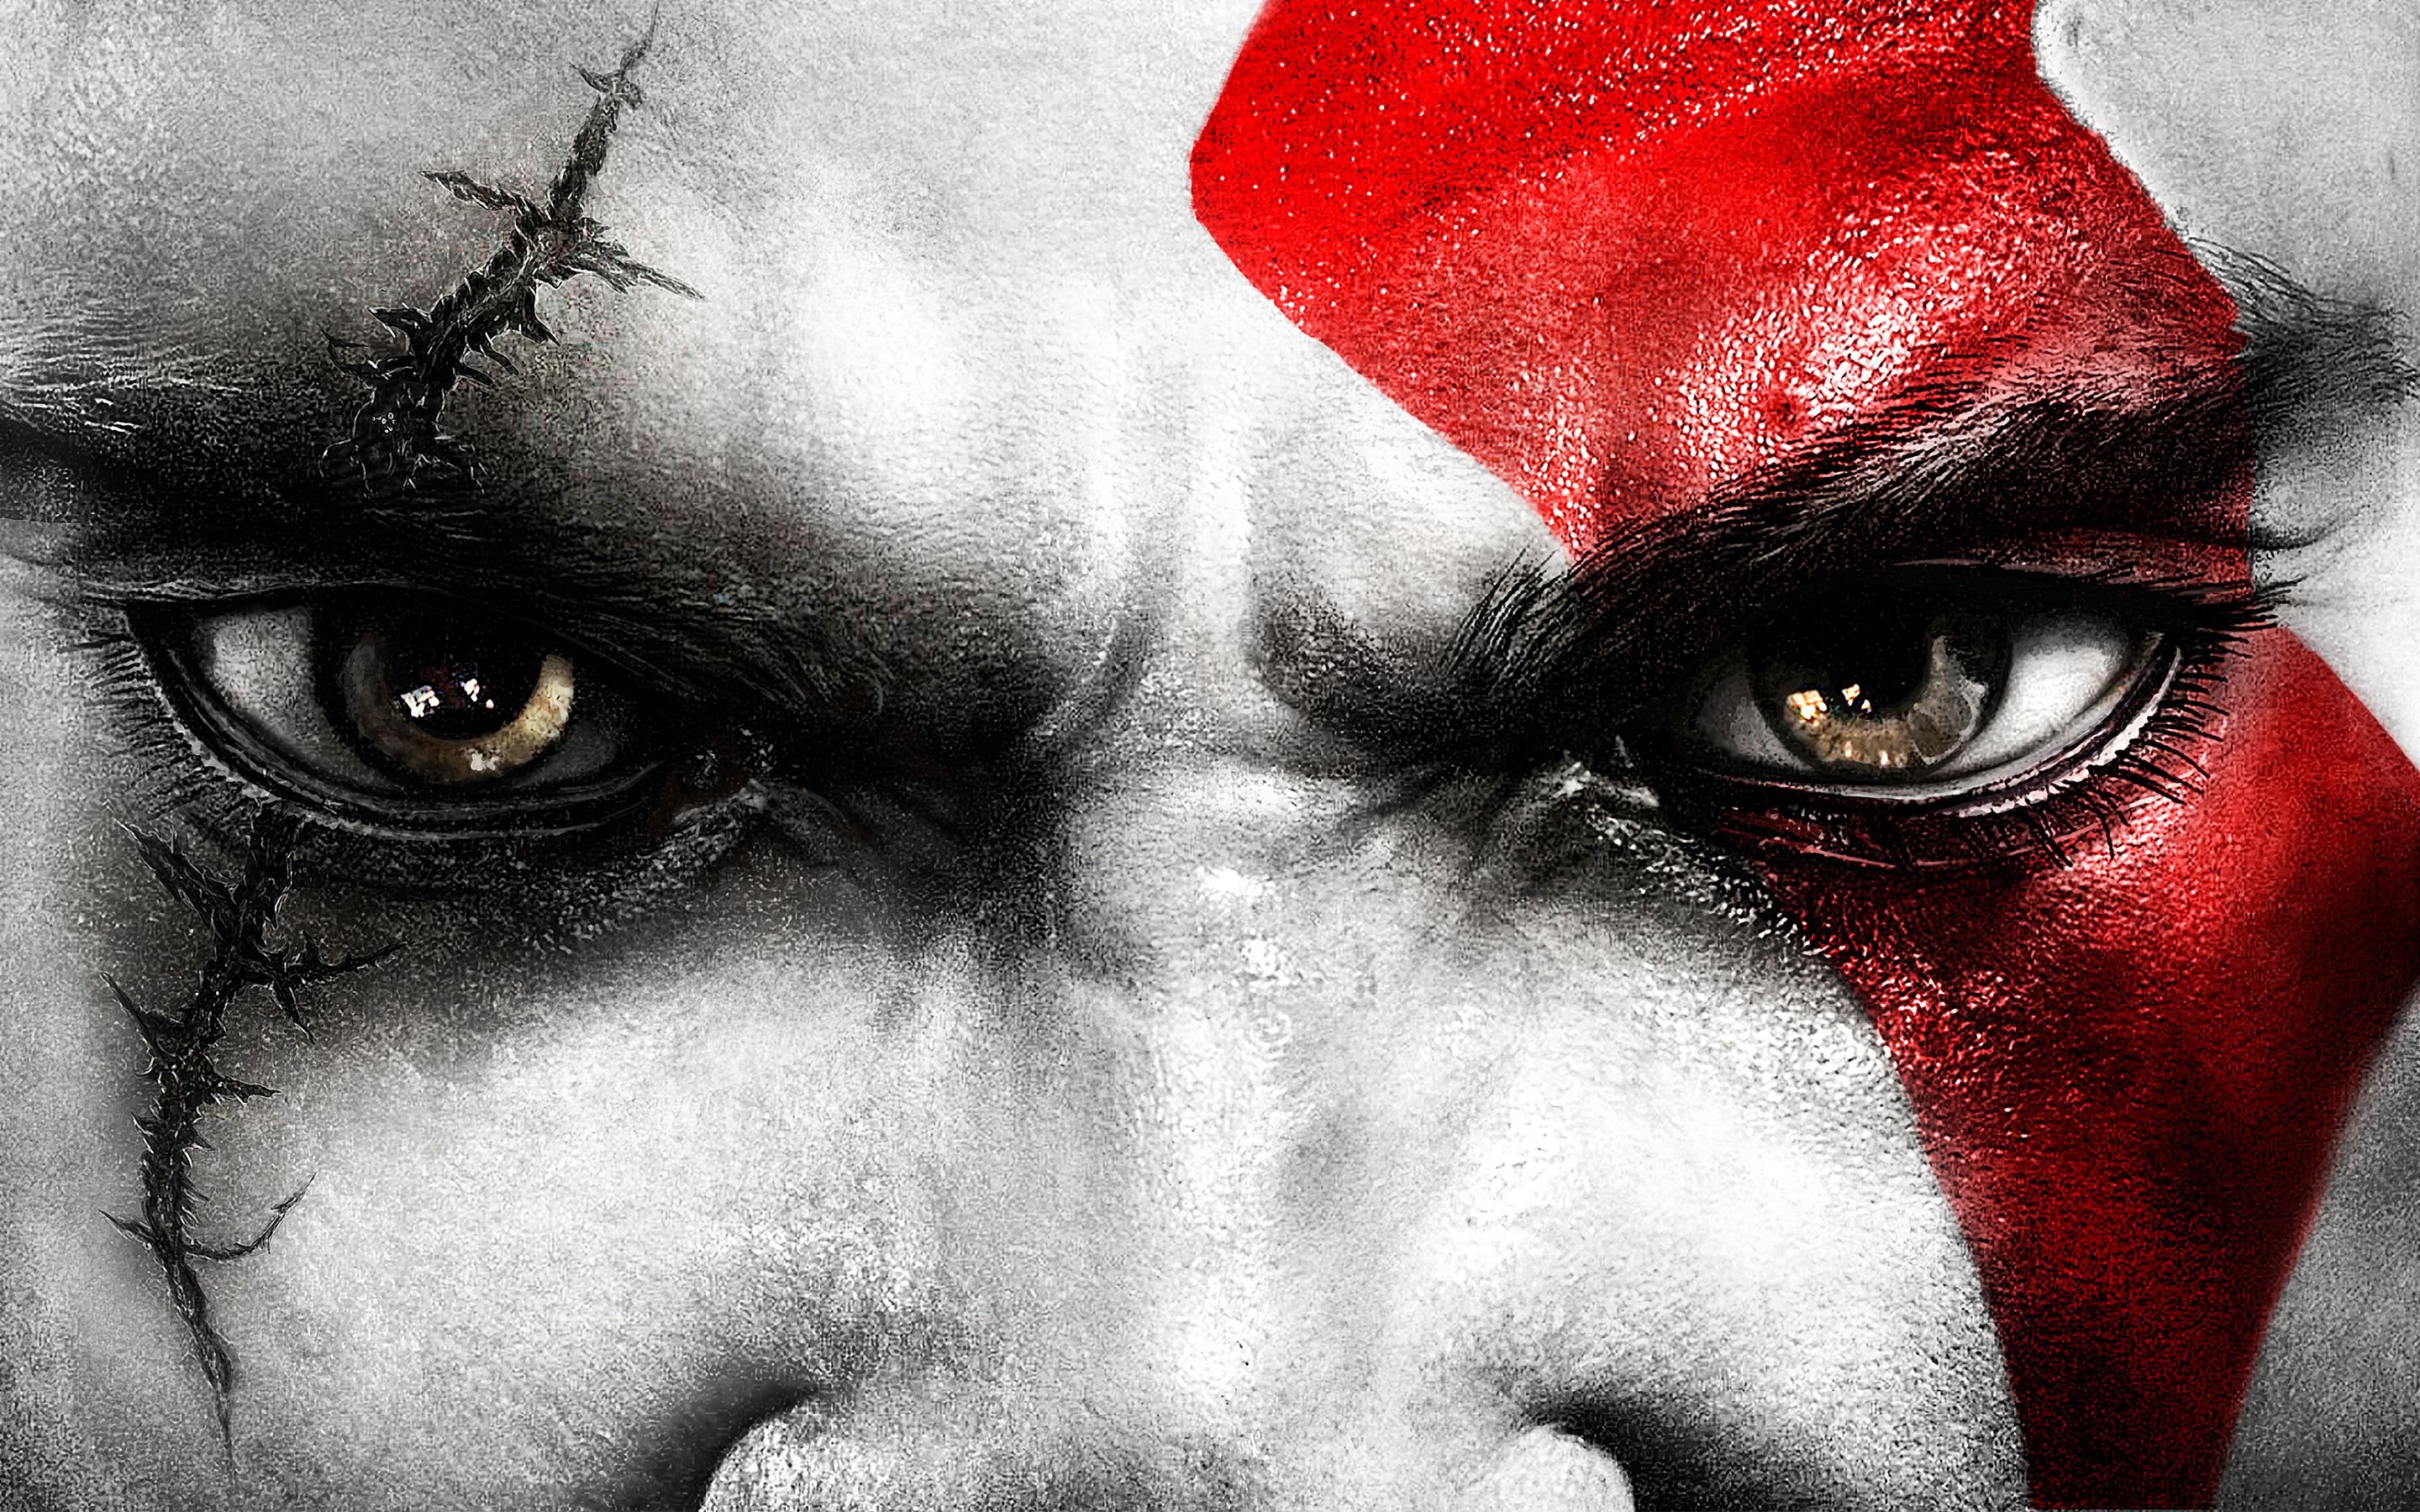 Eyes Kratos Eyes Wallpapers Hd Wallpapers Kratos God Of War God Of War New Gods